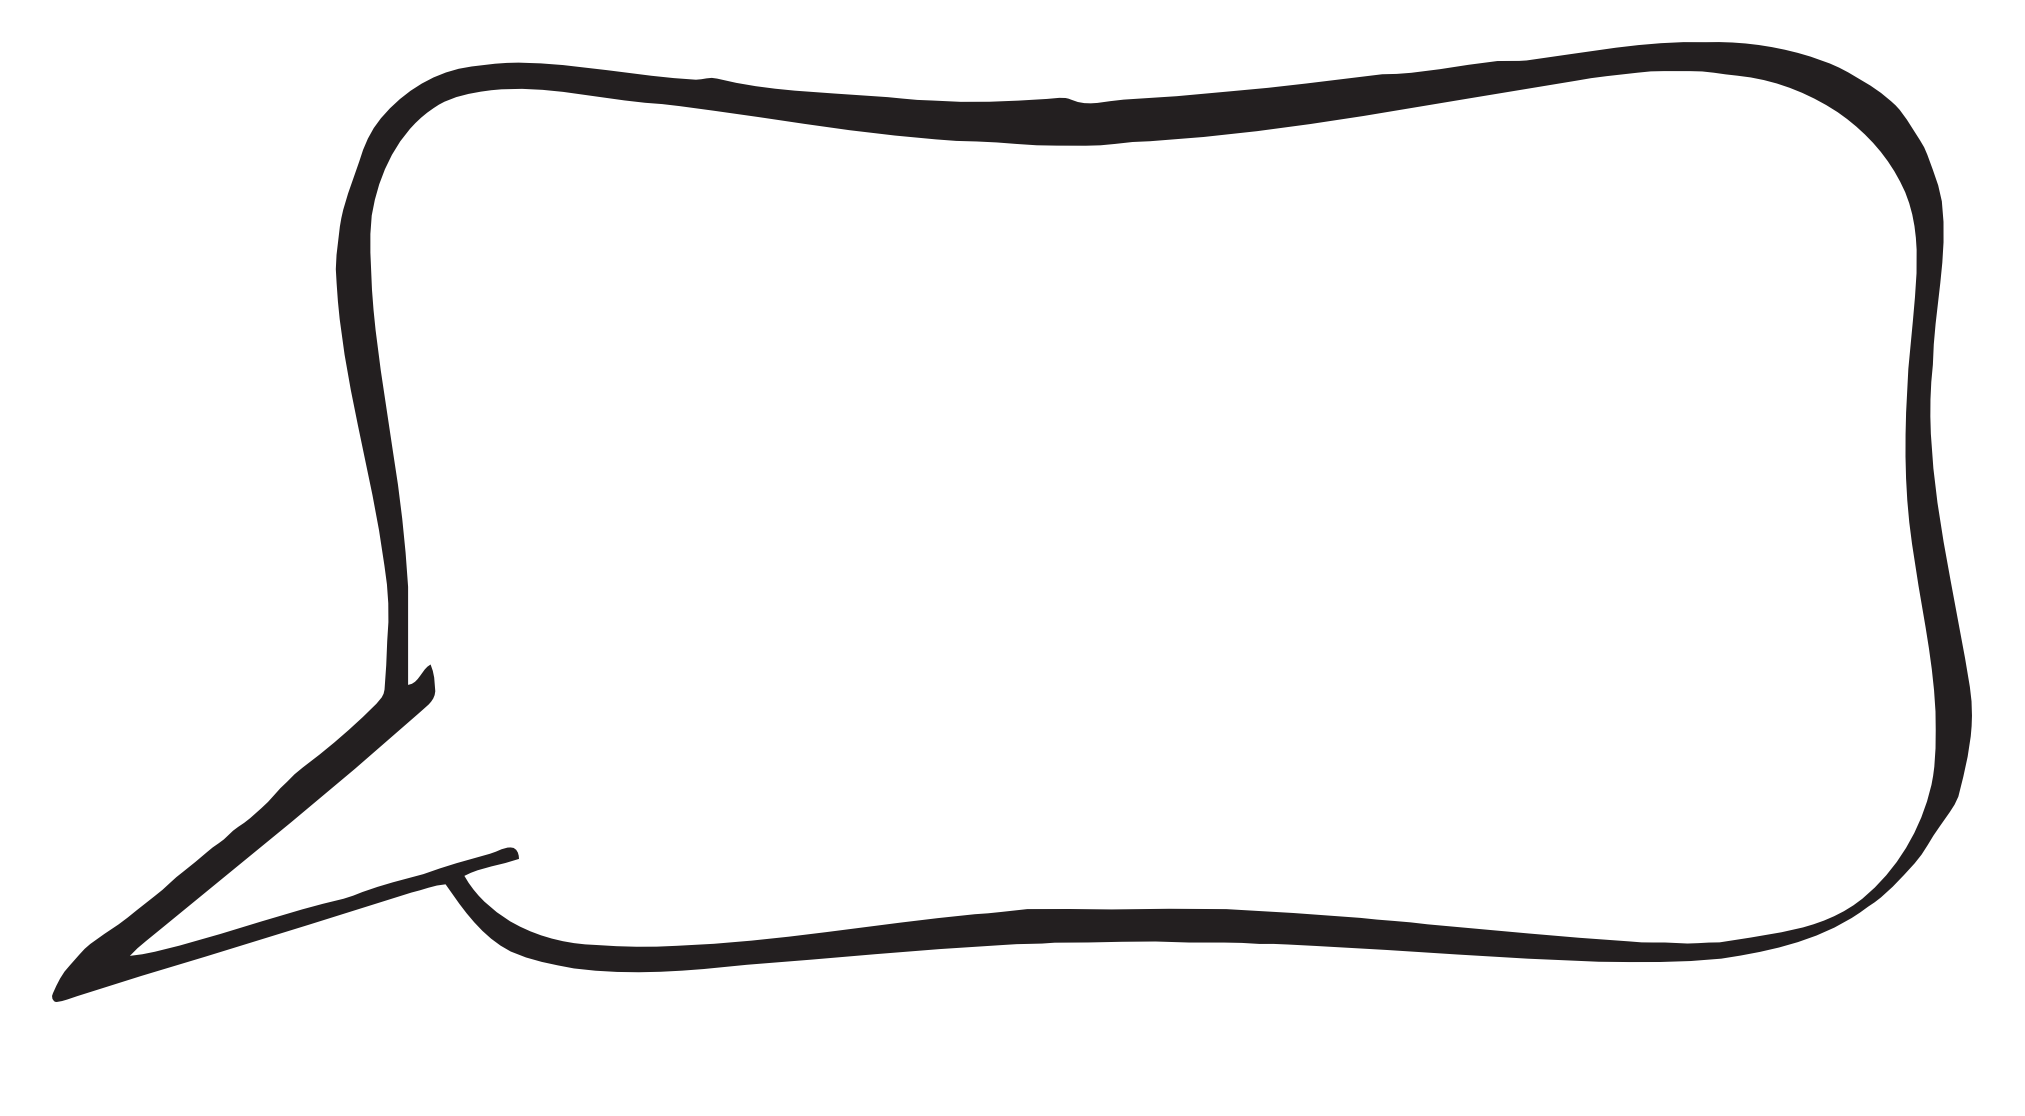 Speech Balloon Png | Free download on ClipArtMag